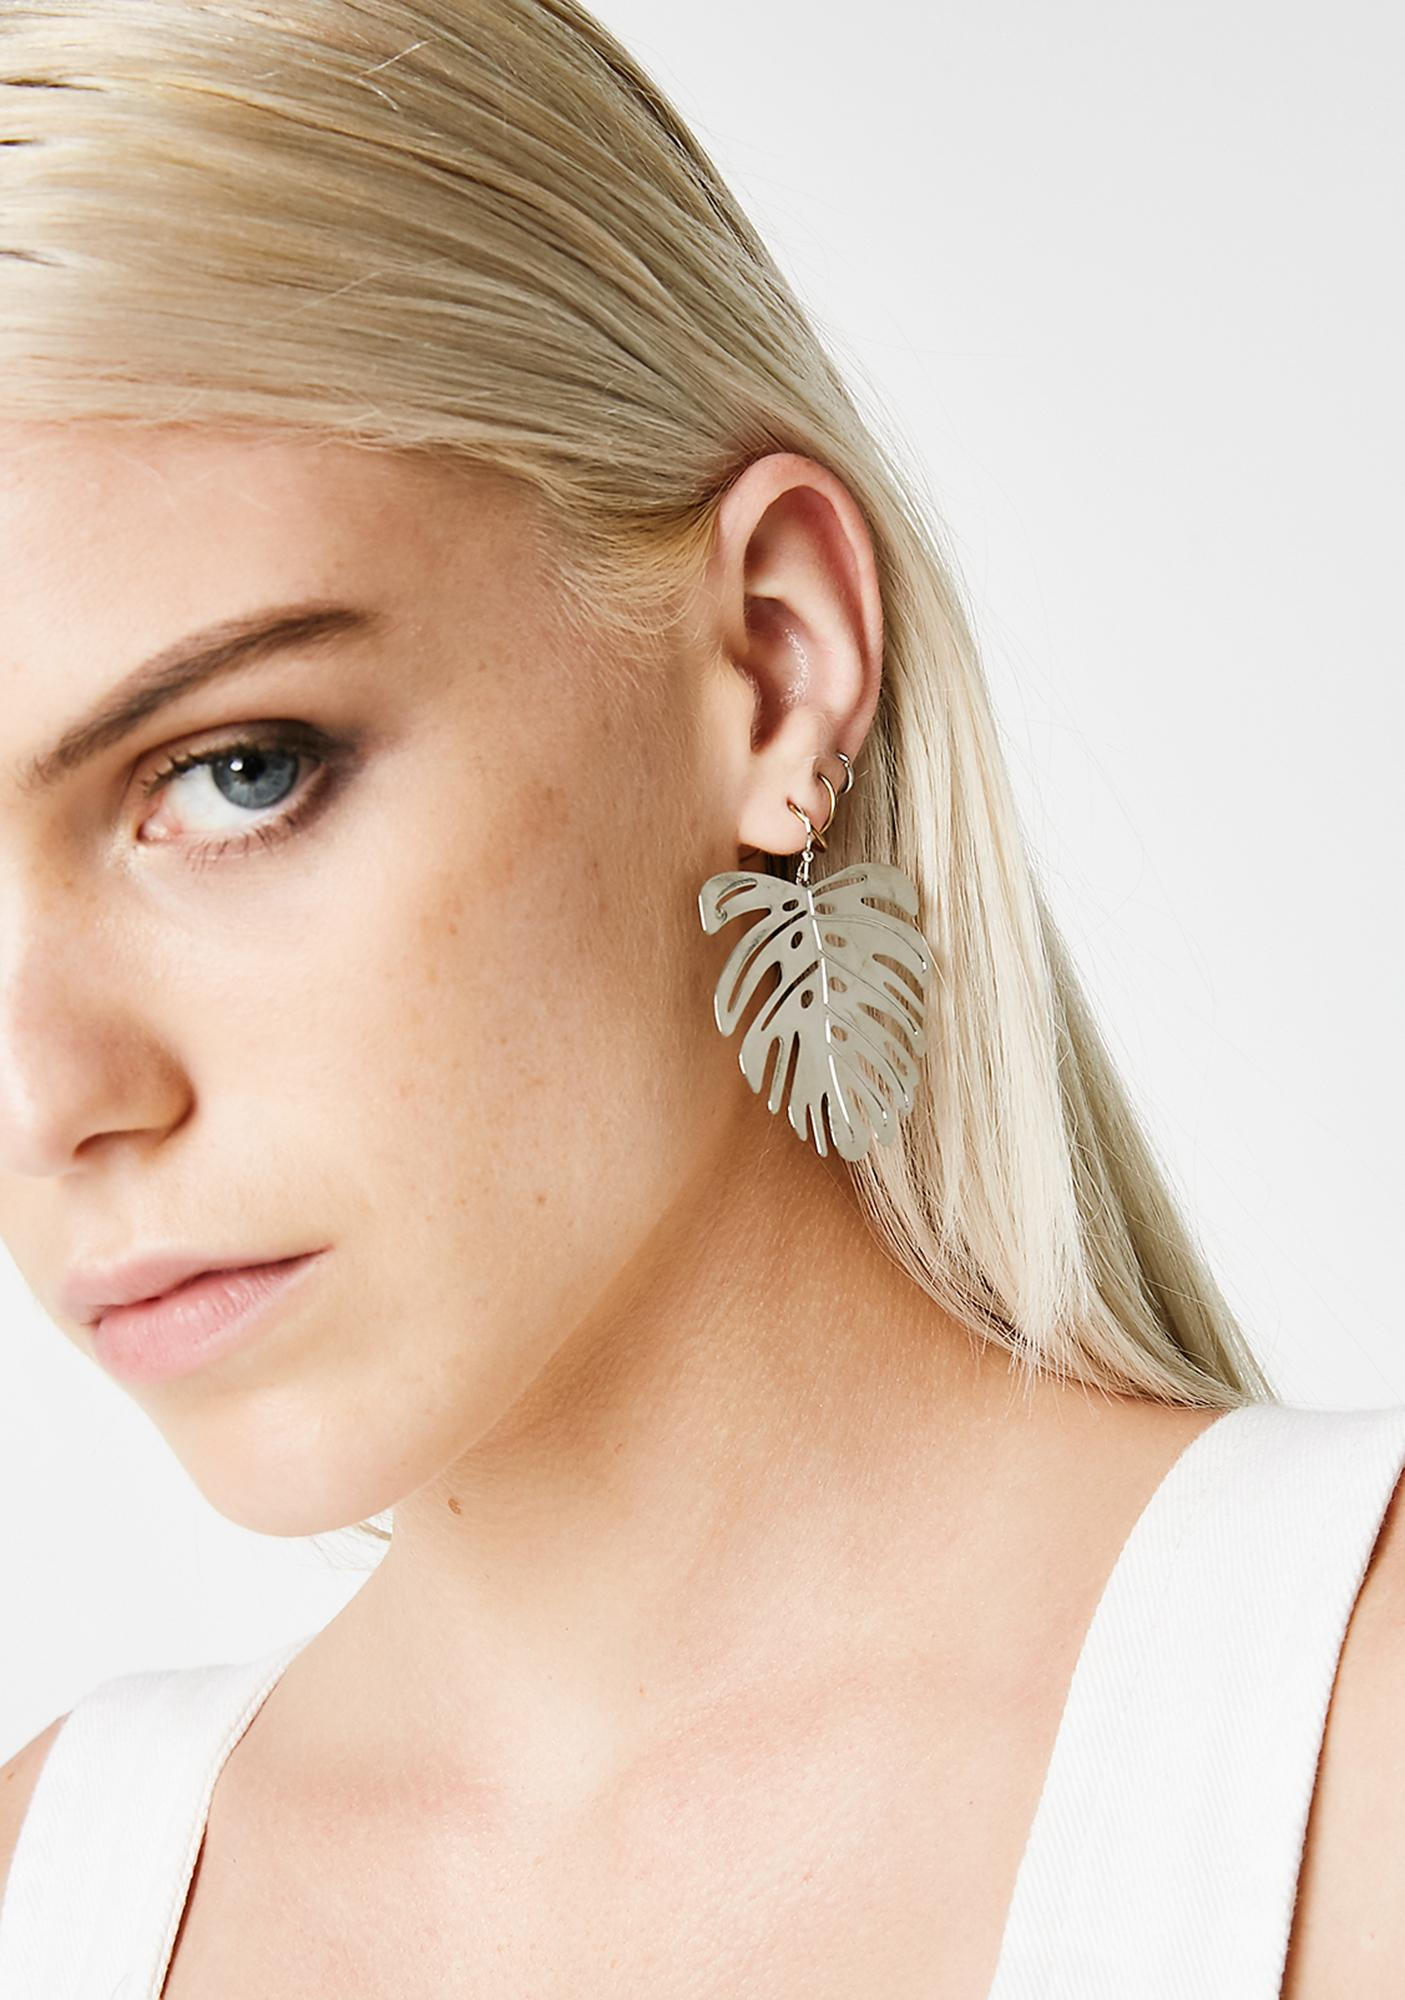 Vacation Mode Palm Earrings